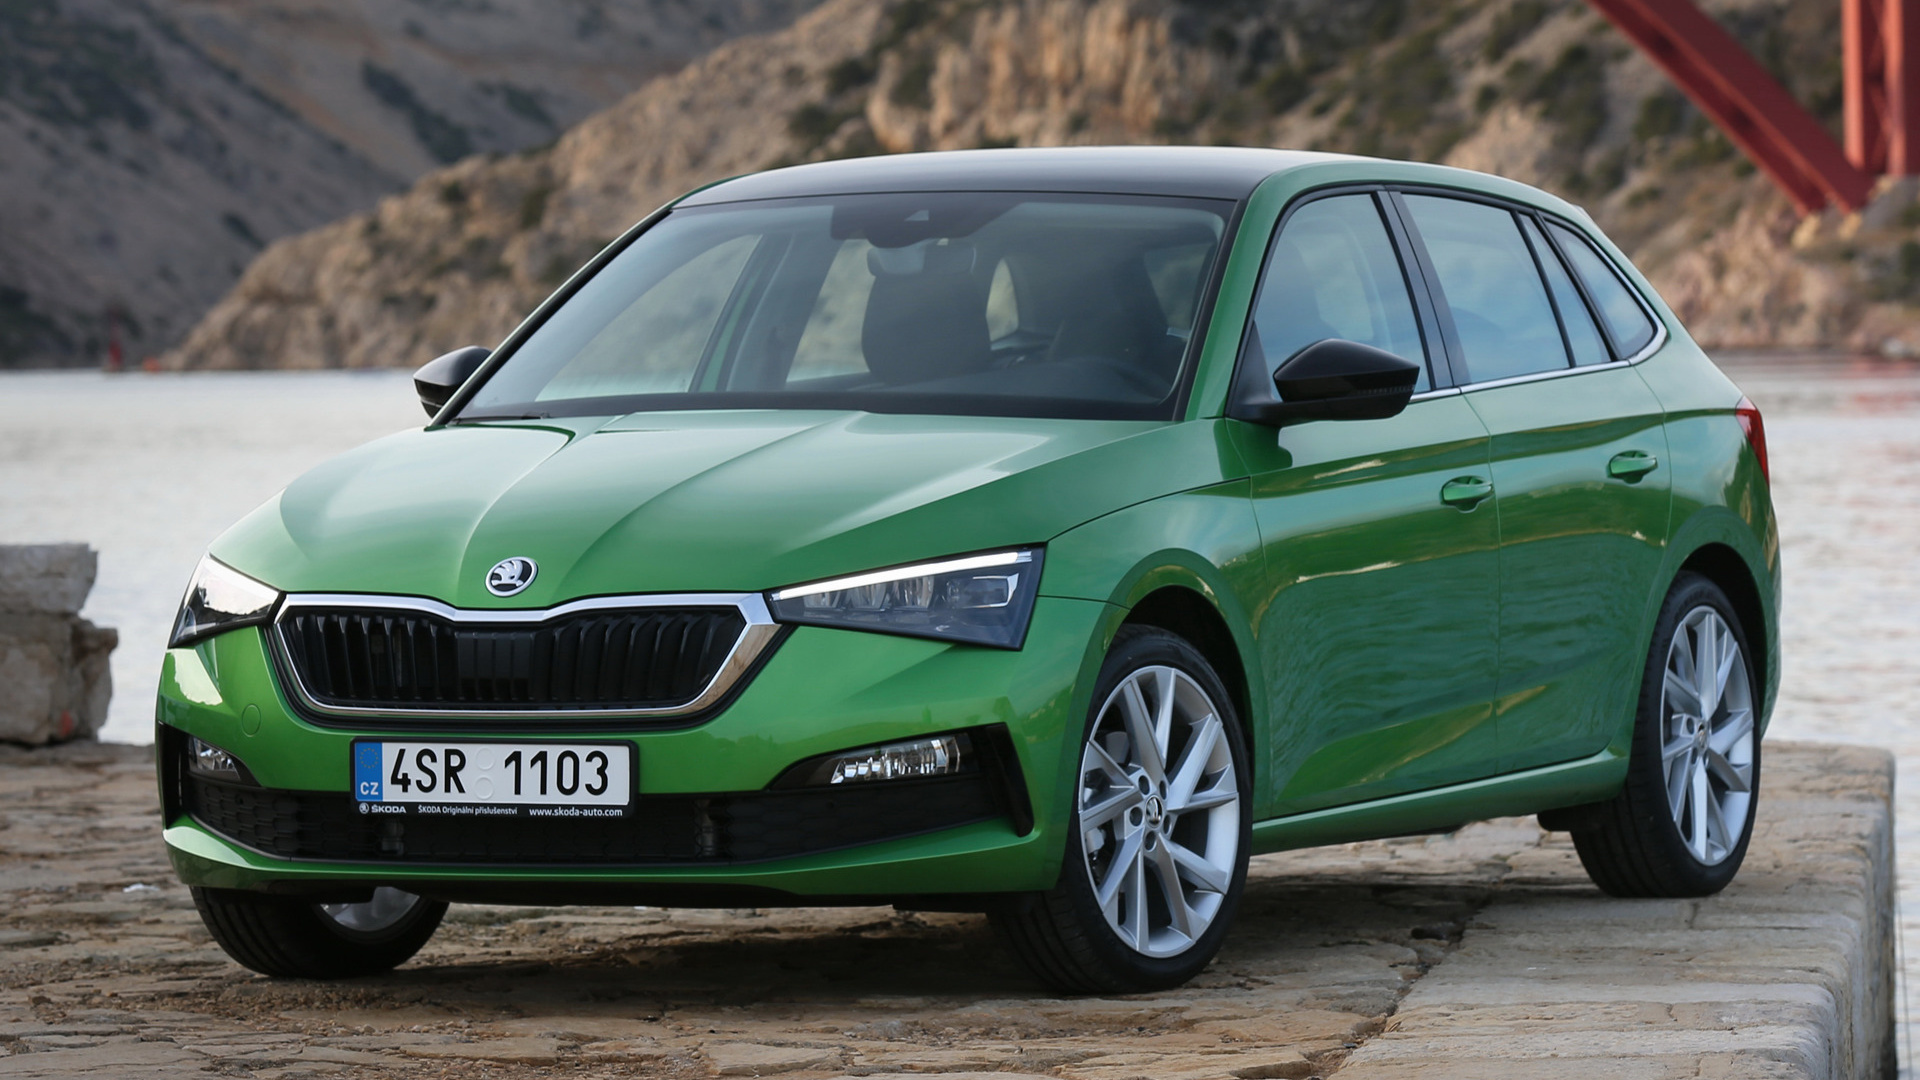 2019 Skoda Scala   Wallpapers and HD Images Car Pixel 1920x1080